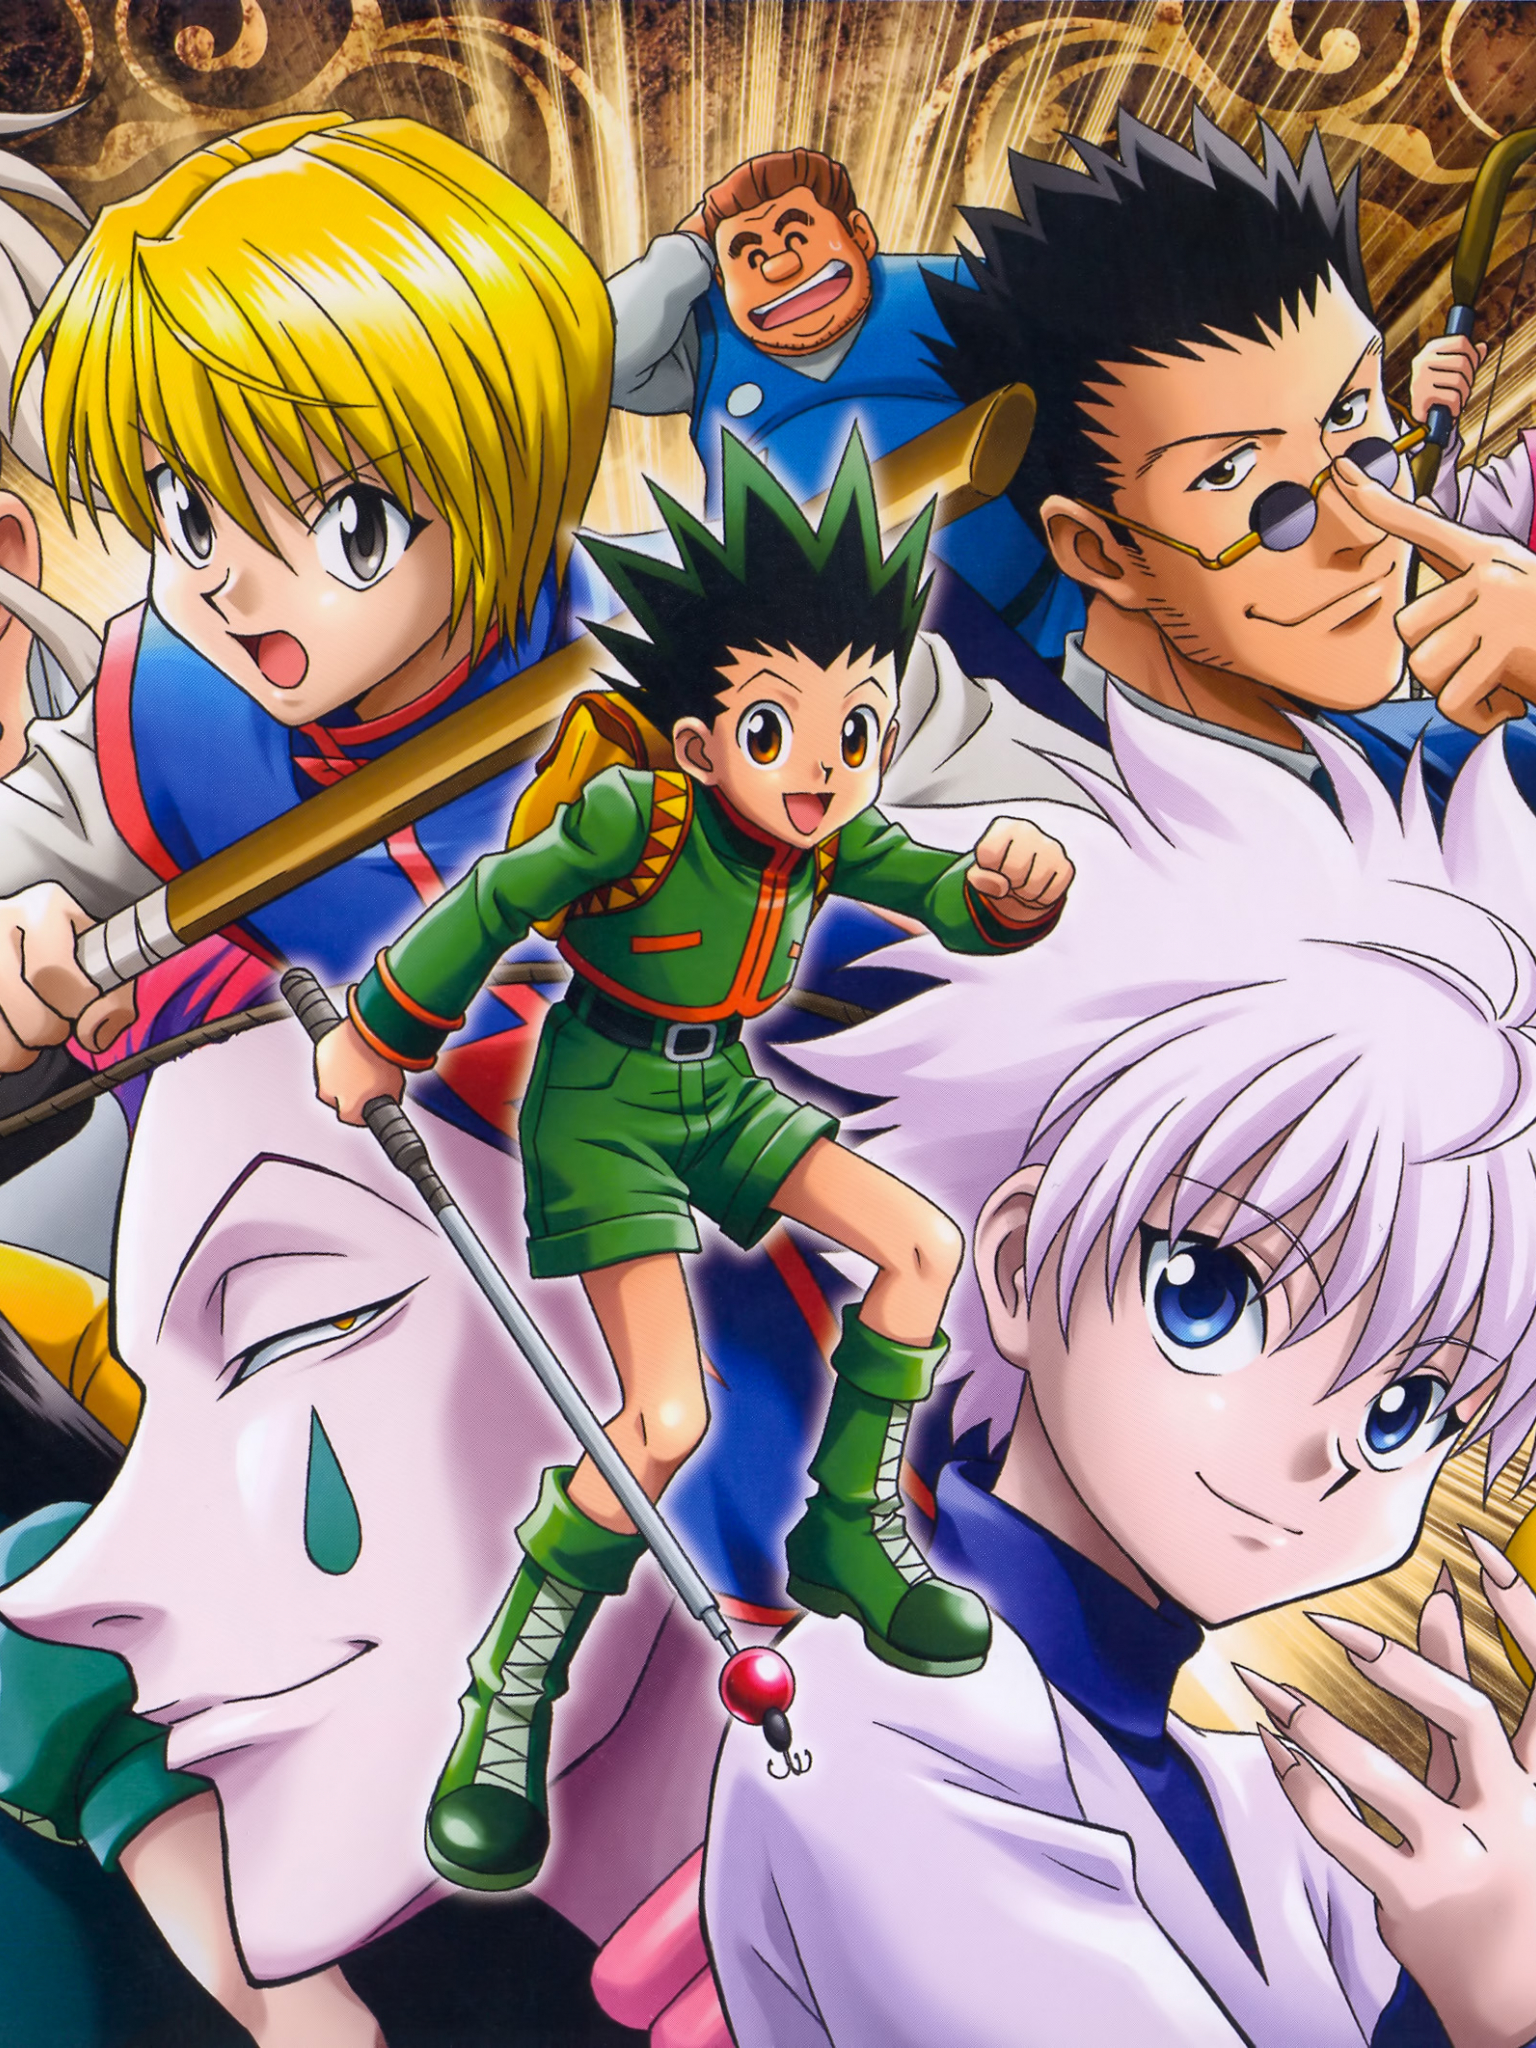 Free Download Hunter X Hunter Anime Hd Wallpaper Animation